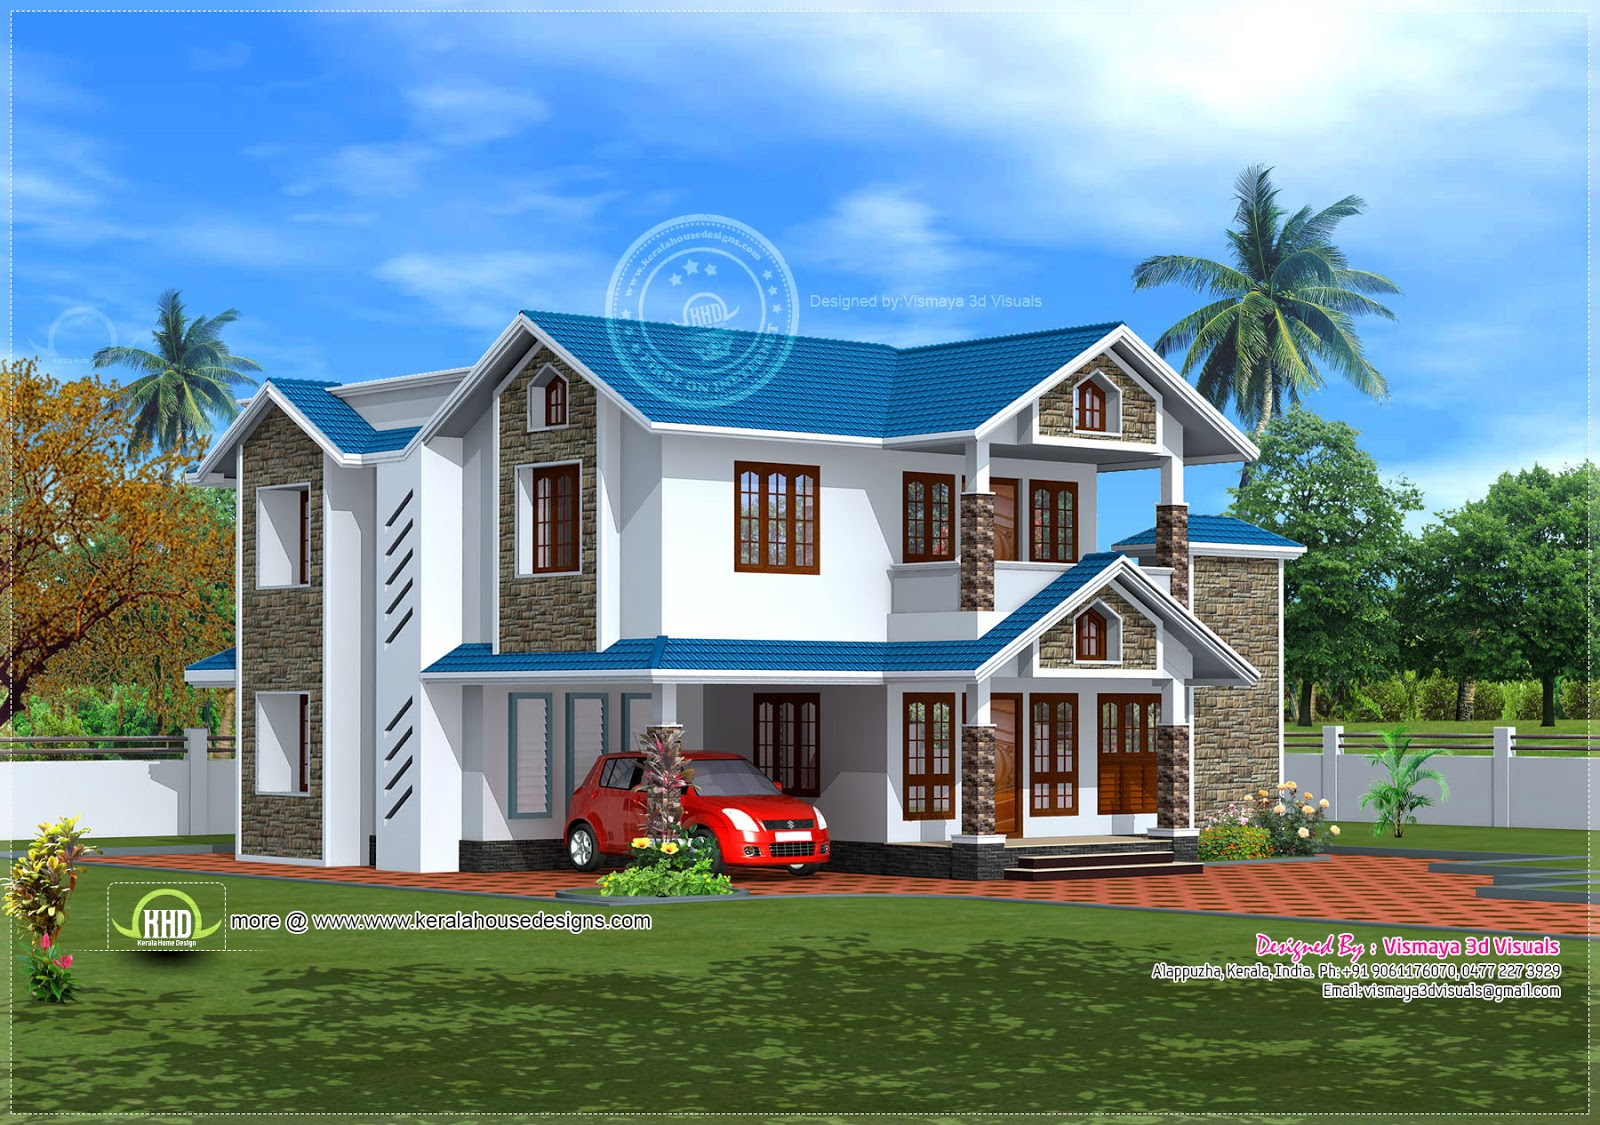 Vismaya 3d visuals house plan joy studio design gallery for Beautiful home exteriors